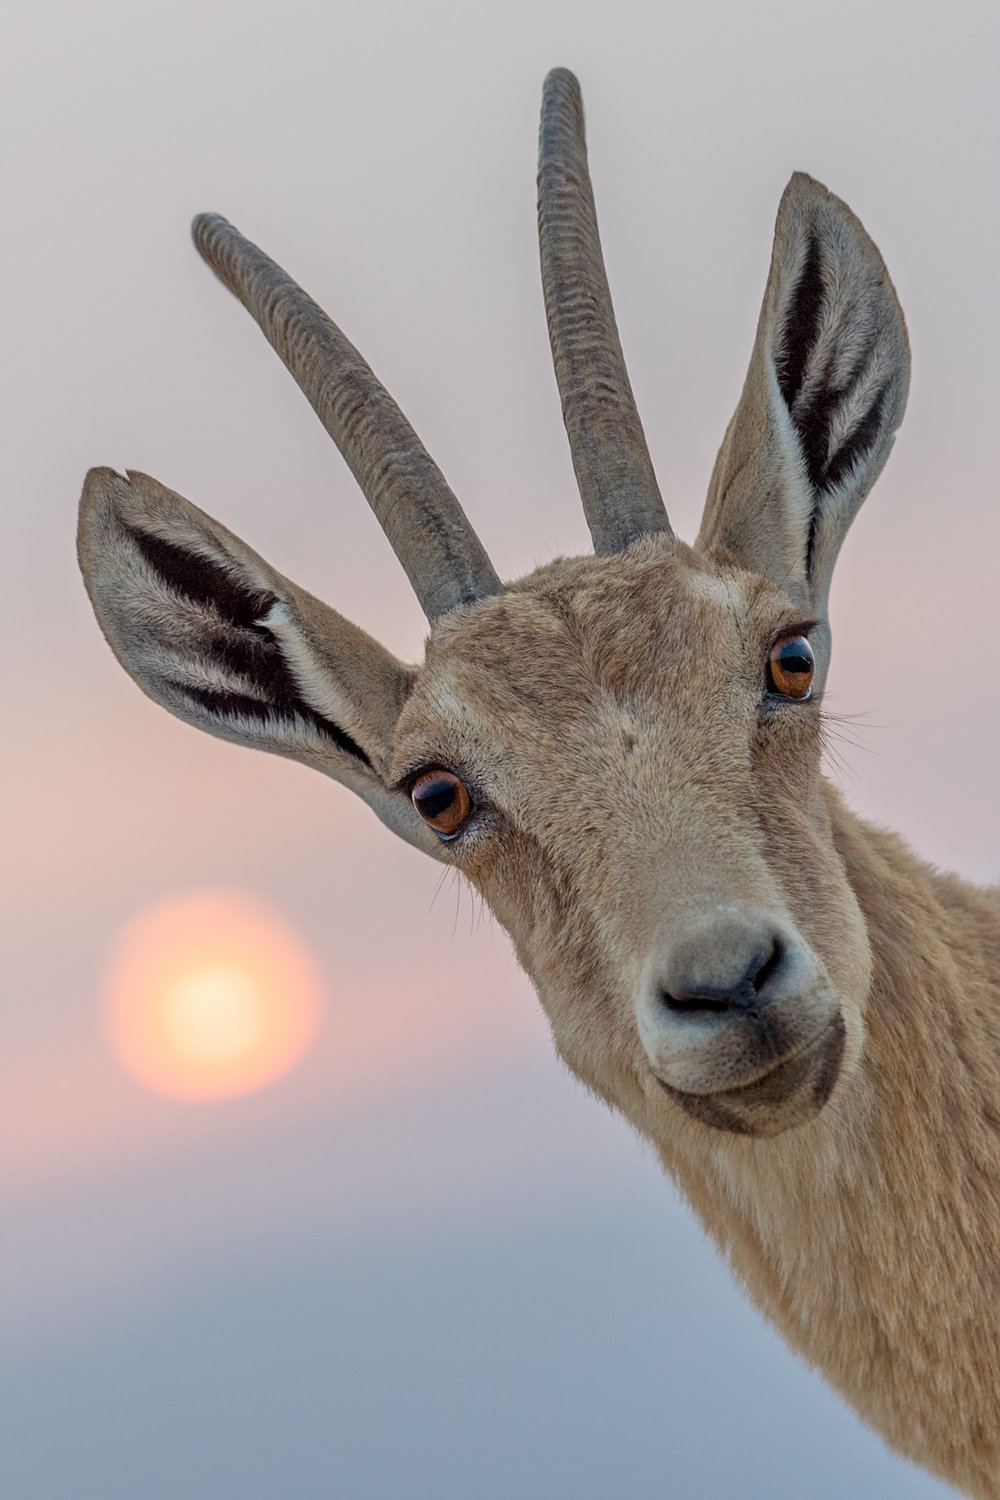 The Ibex and the Sunrise